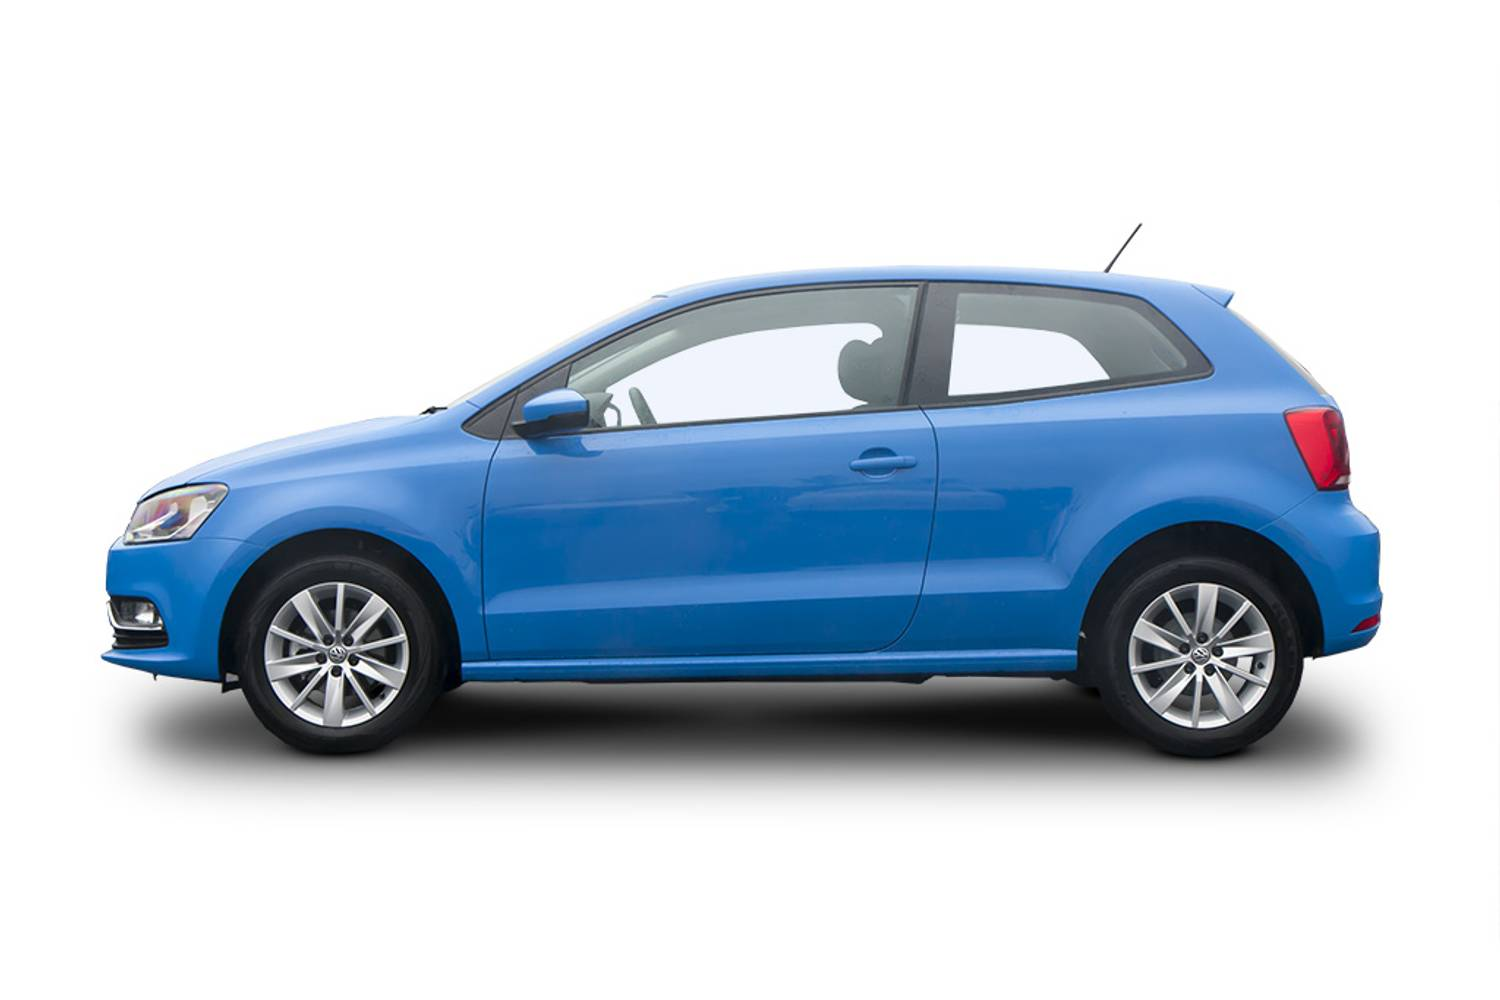 new volkswagen polo hatchback 1 2 tsi match edition 3 door dsg 2017 for sale. Black Bedroom Furniture Sets. Home Design Ideas